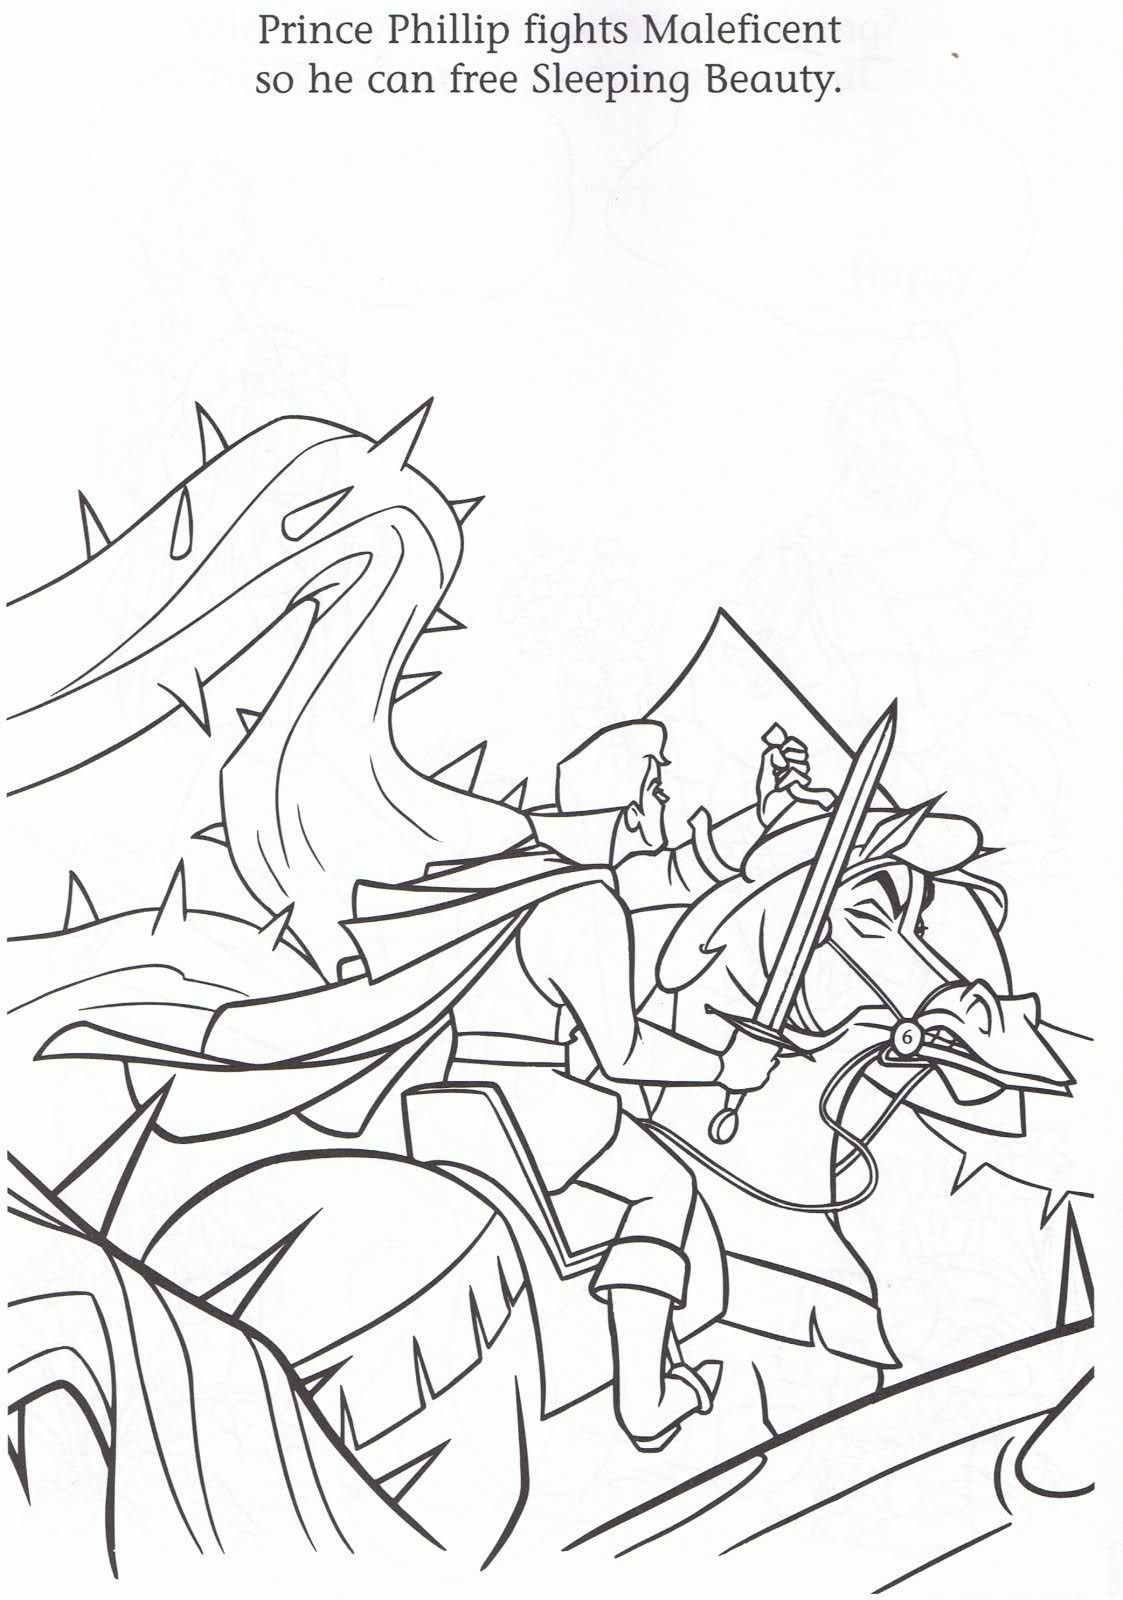 Download Or Print This Amazing Coloring Page Coloring Page Sleeping Beauty Coloring Pages In 2020 Sleeping Beauty Coloring Pages Coloring Pages Dragon Coloring Page